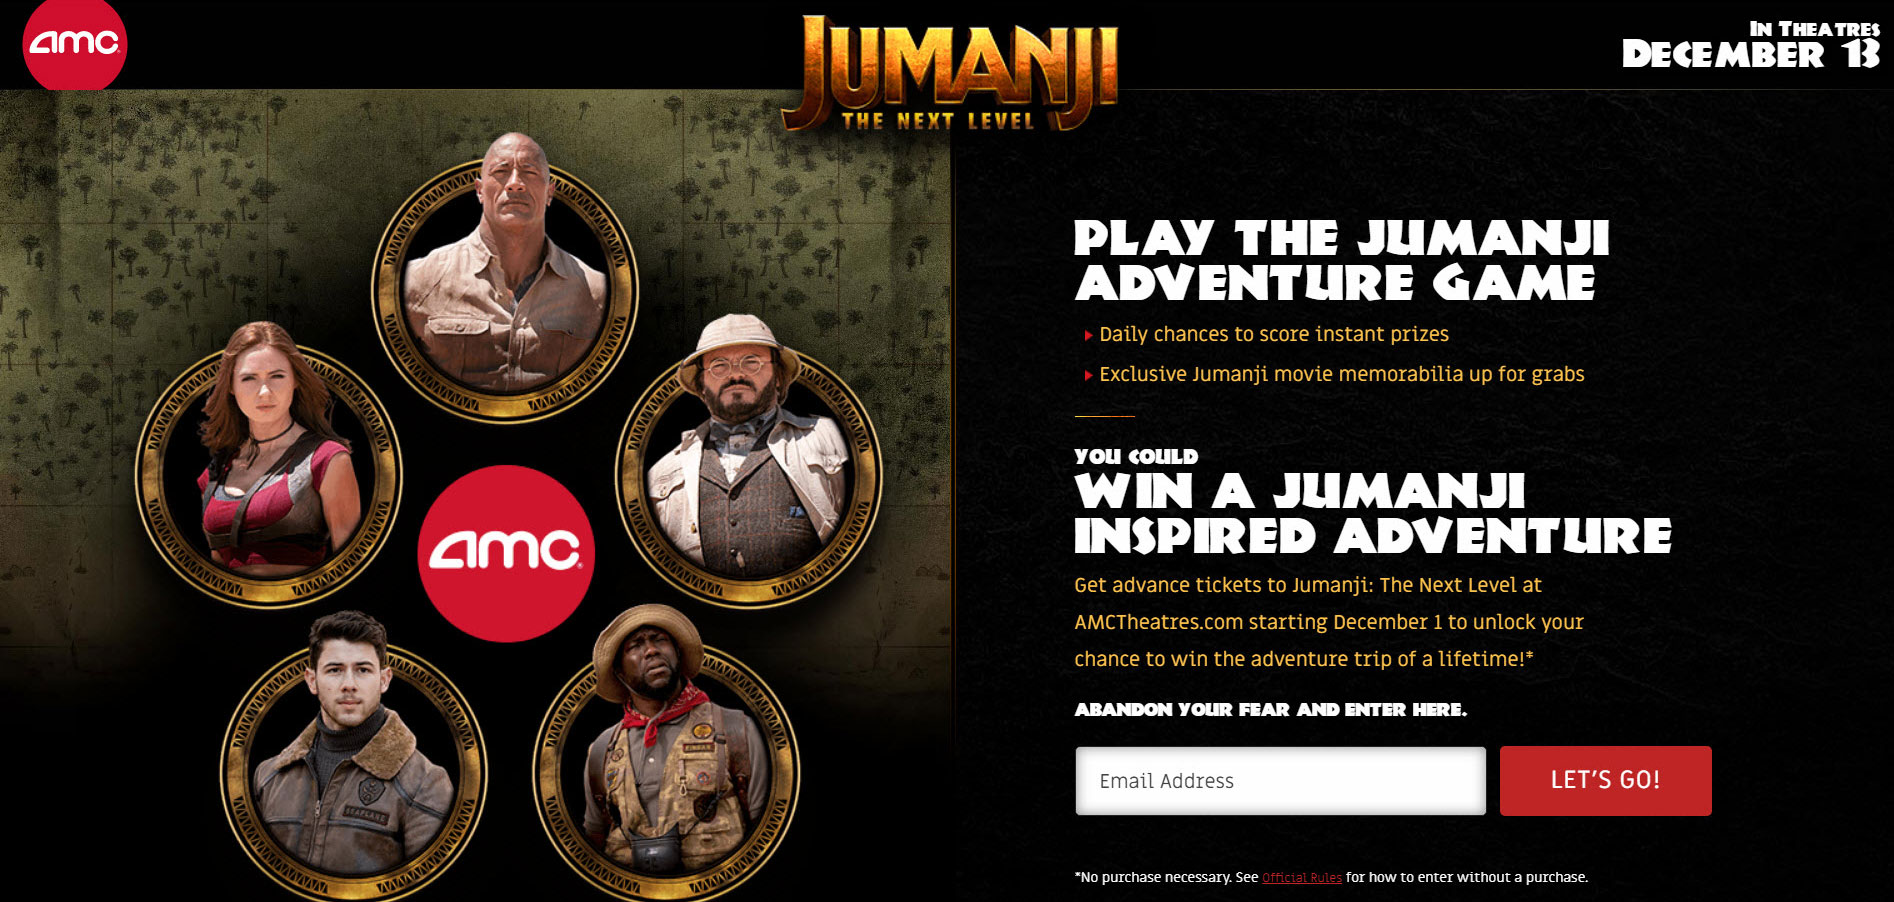 Play the Jumanji Adventure Game Daily chances to score instant prizes. Exclusive Jumanji movie memorabilia is up for grabs and you could win a Jumanji Inspired Adventure. Get advance tickets to Jumanji: The Next Level at AMCTheatres.com starting December 1 to unlock your chance to win the adventure trip of a lifetime!